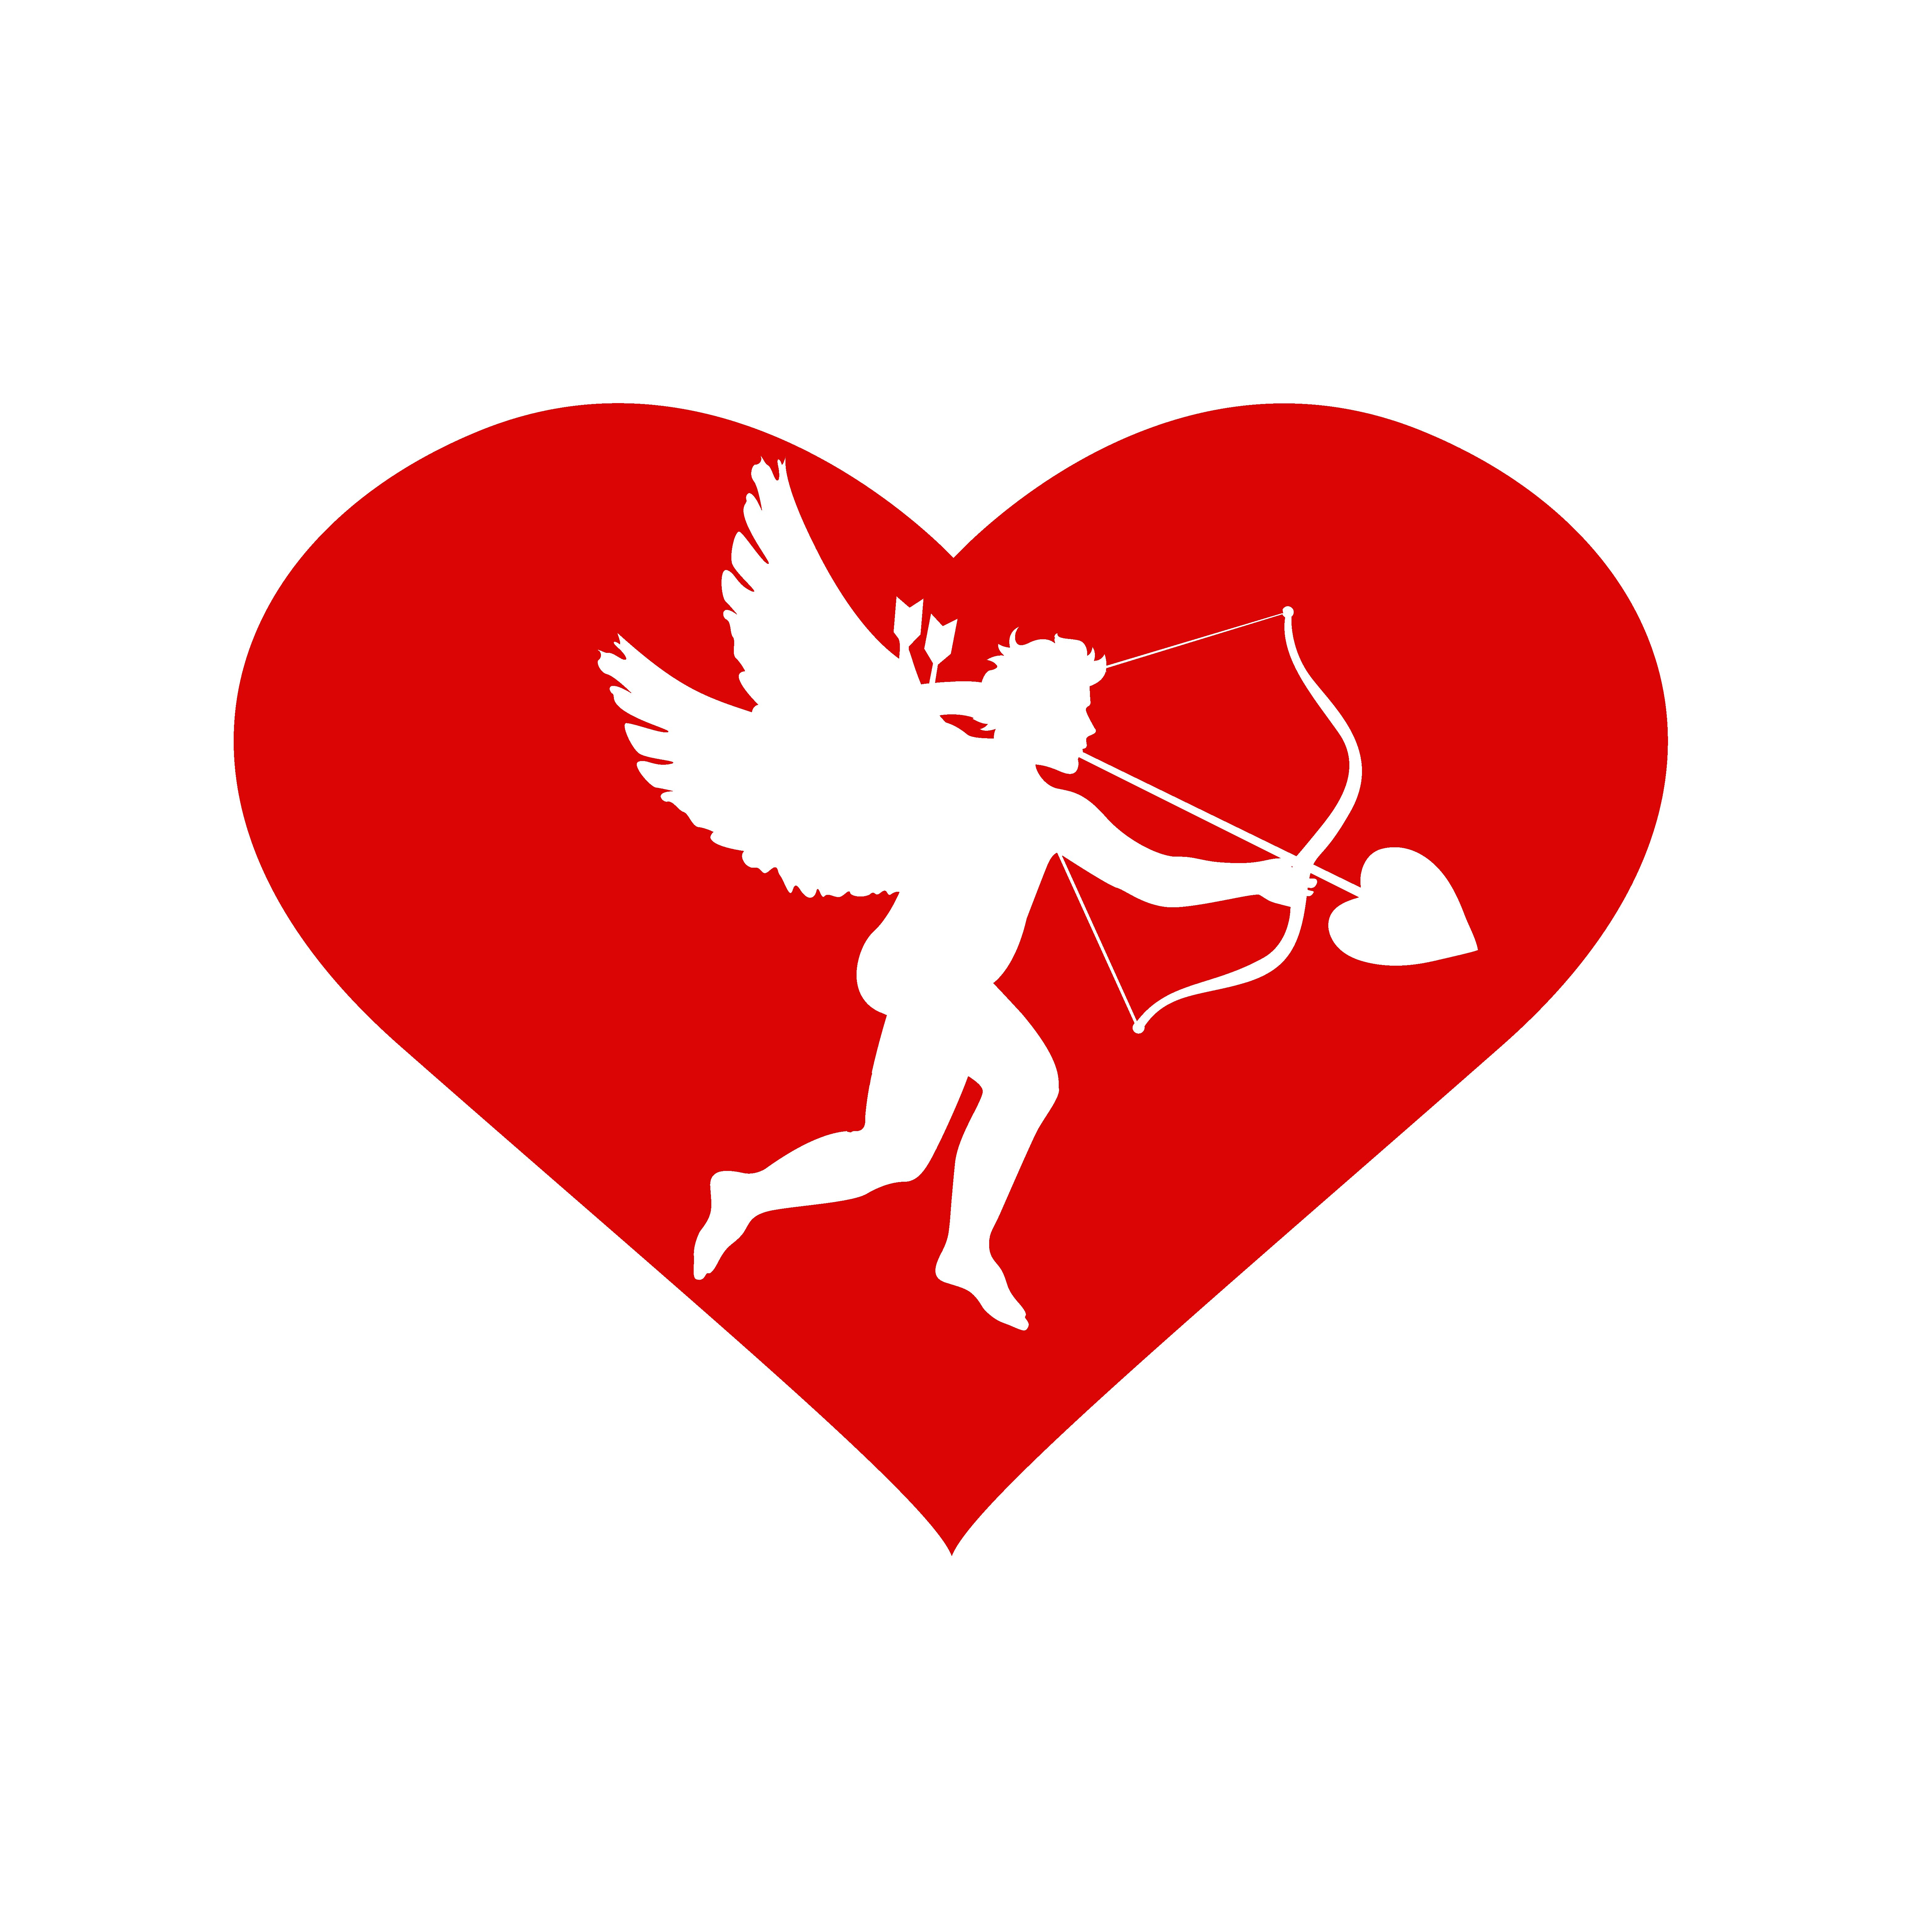 heart with cupid inside. ~ Illustrations ~ Creative Market